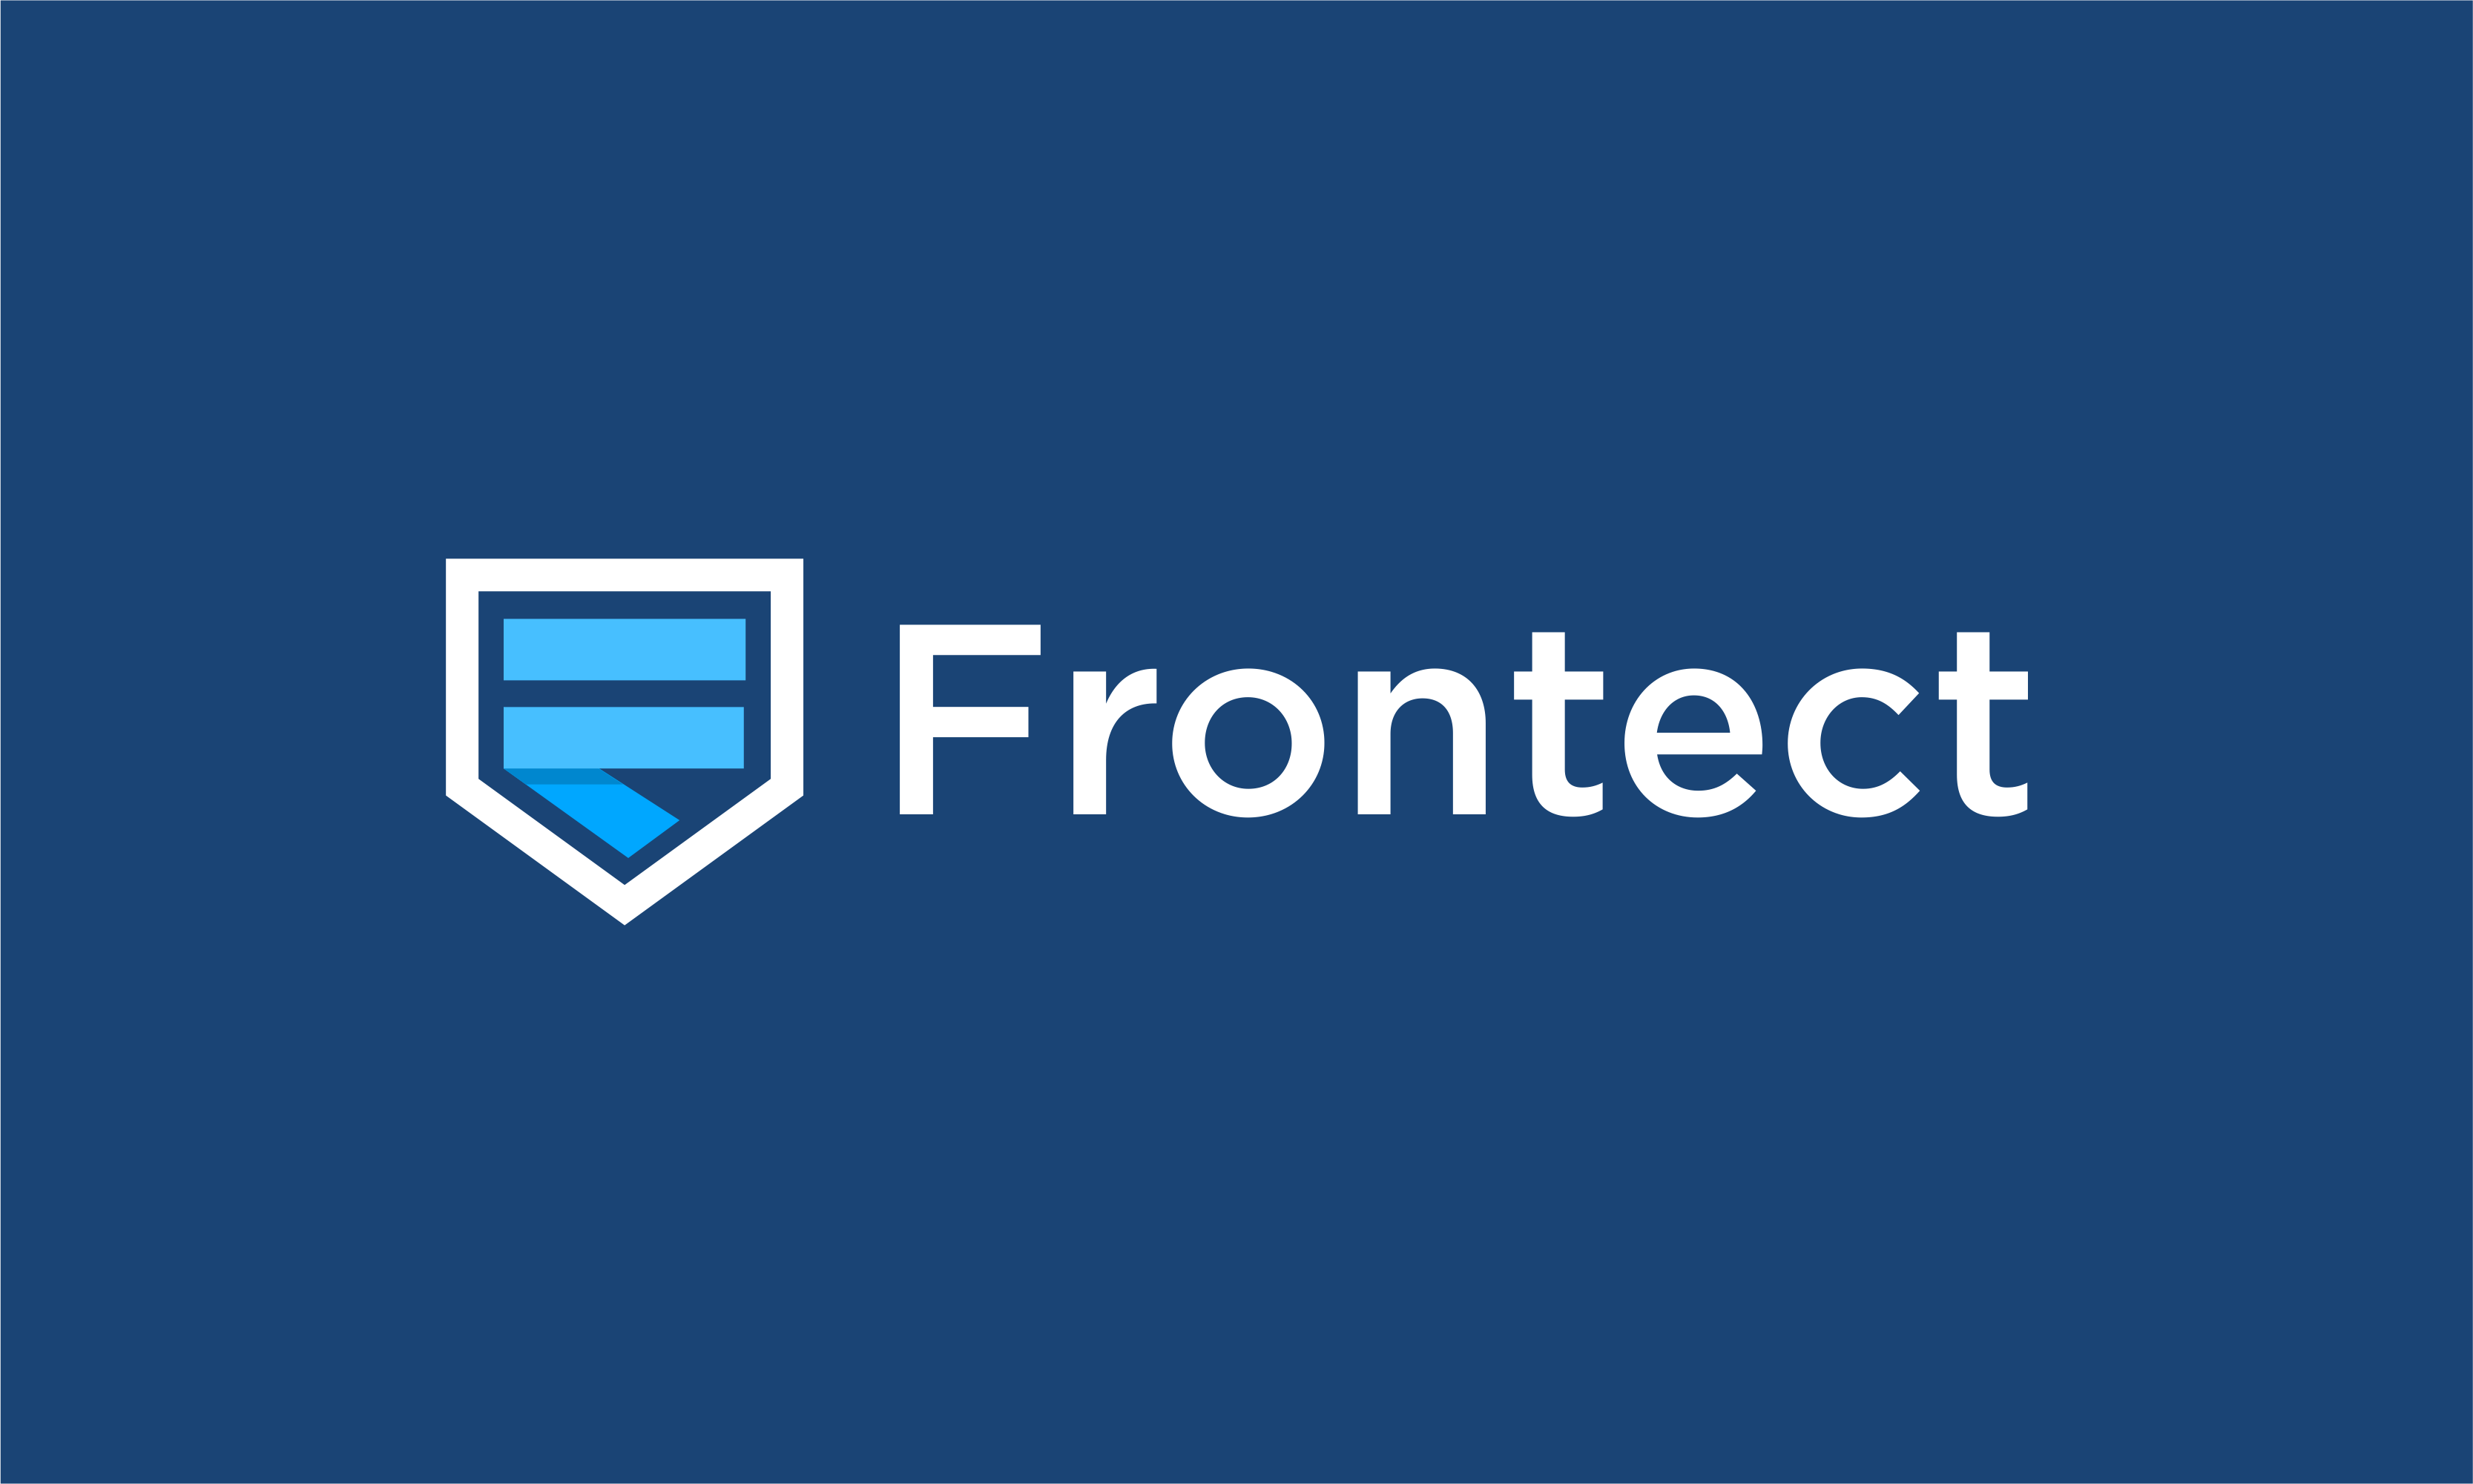 Frontect